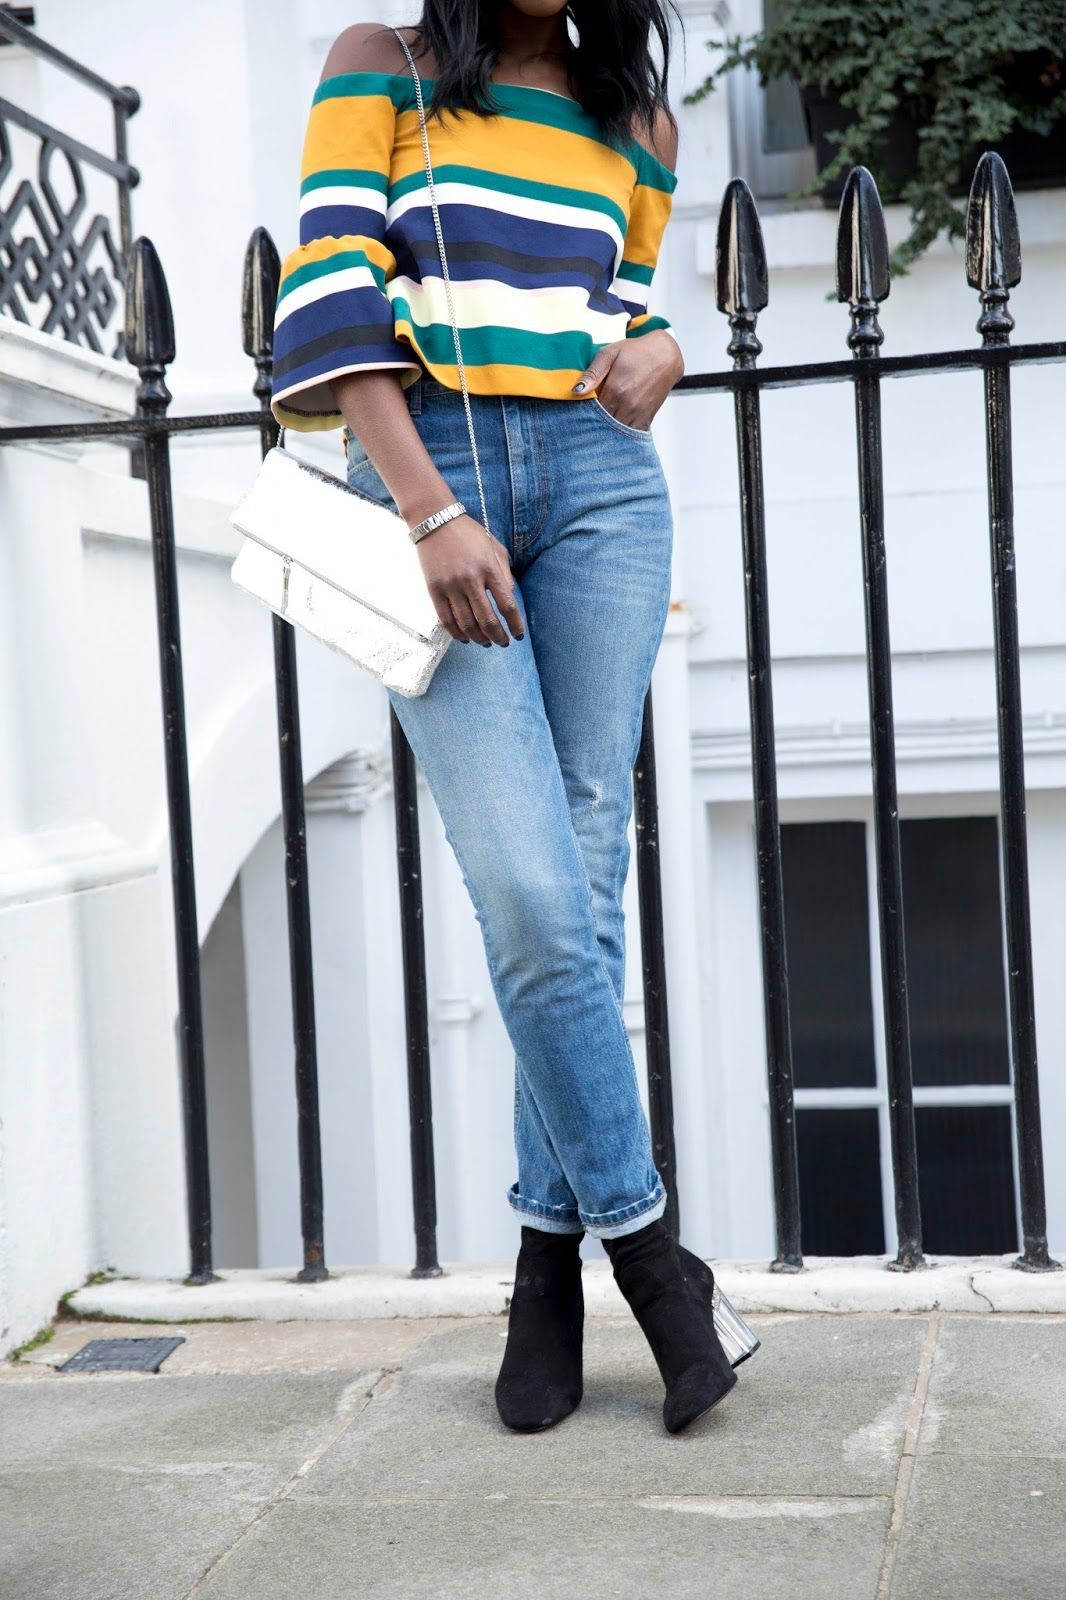 Abisola wears CHLOE boot - http://www.publicdesire.com/catalogsearch/result/?q=chloe&utm_source=Pinterest&utm_medium=Social&utm_campaign=Campaign_Olapic Credit - http://yourstrulyabisola.blogspot.co.uk/2016/02/springs-cold-shoulders.html